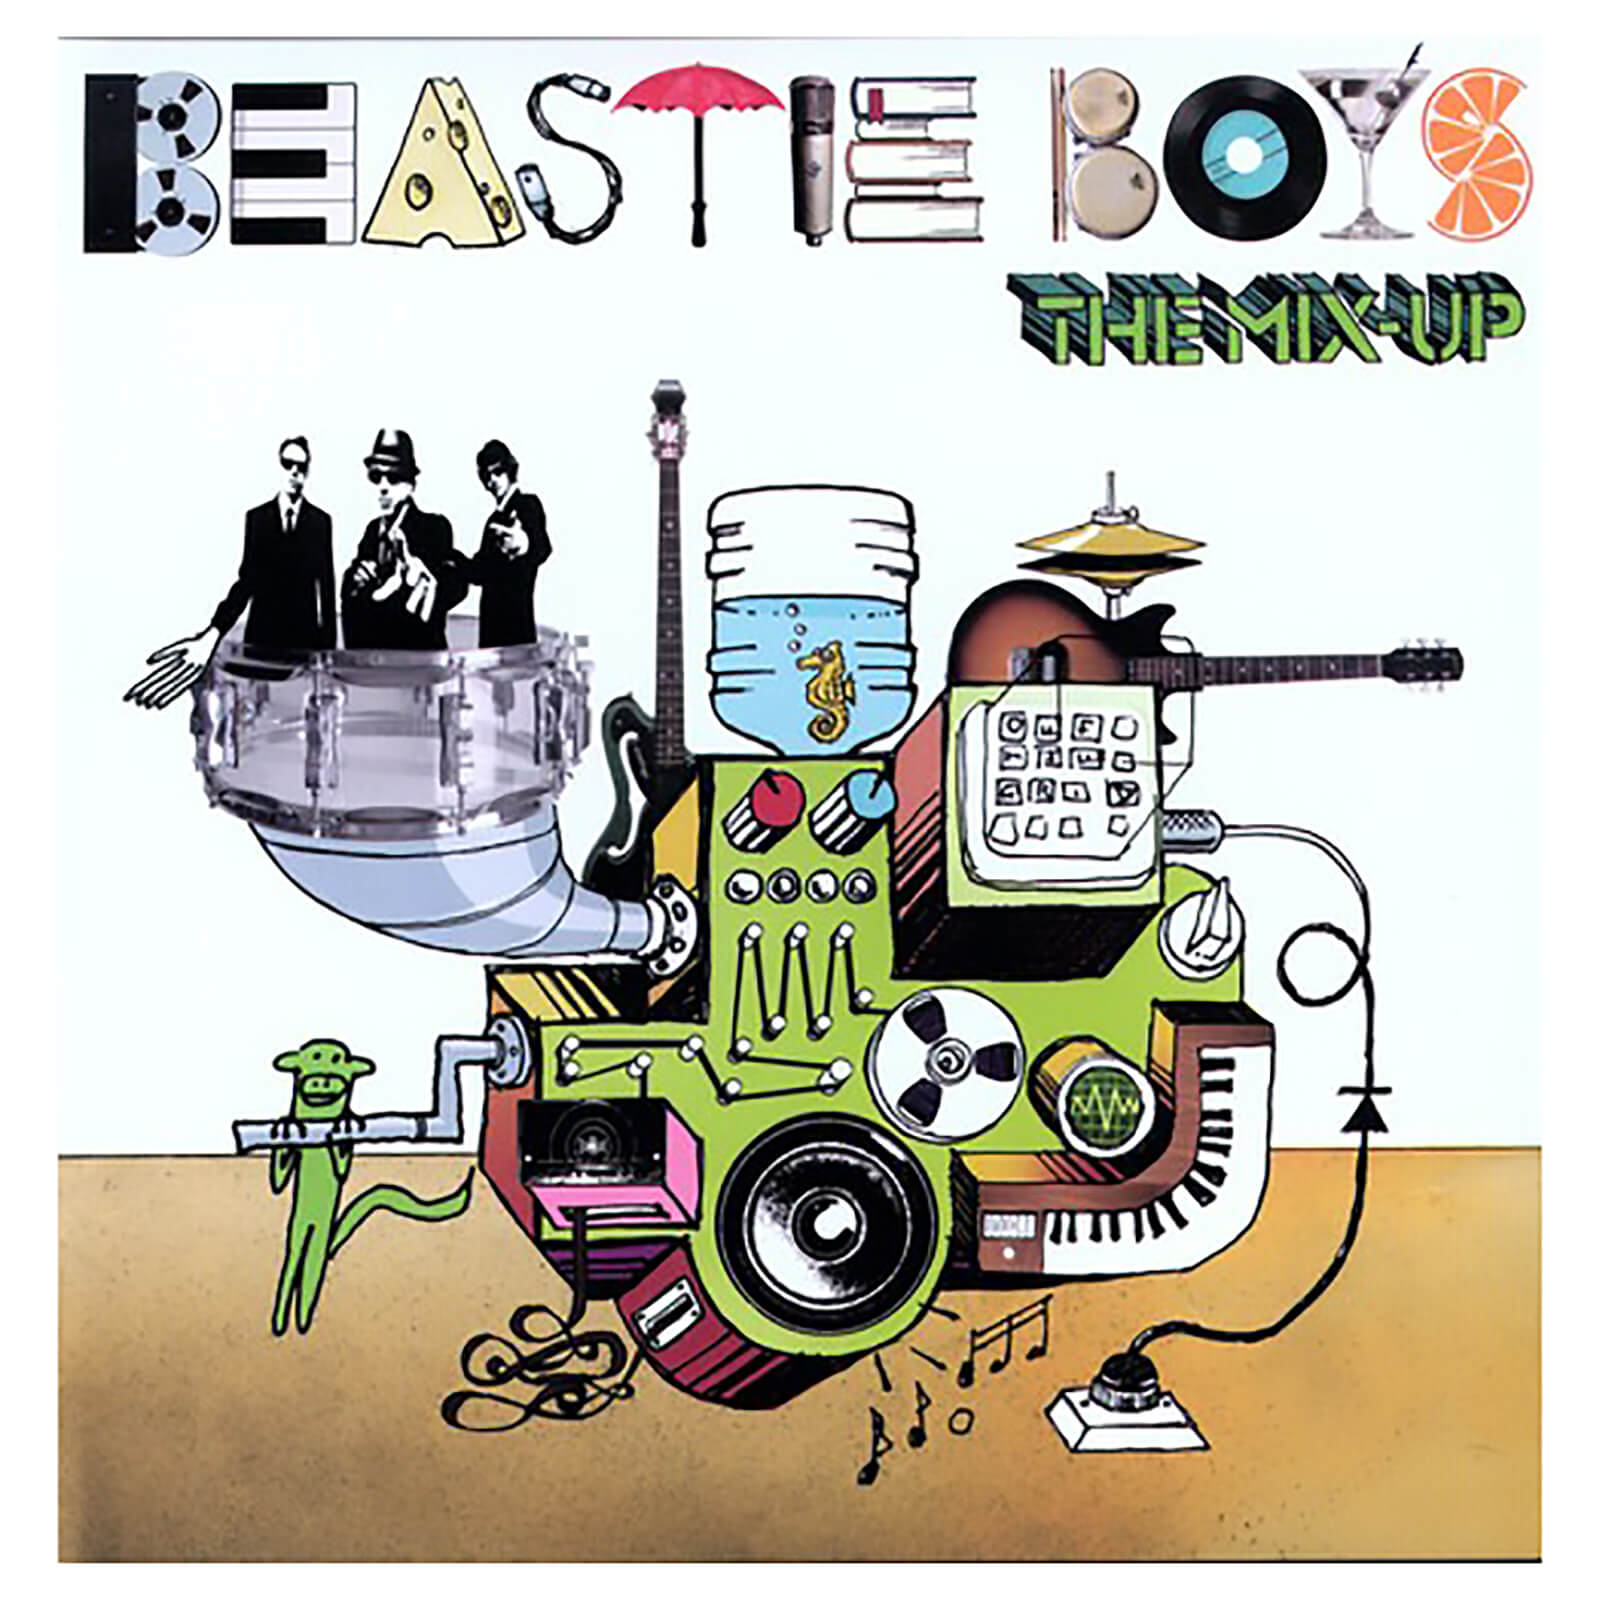 Beastie Boys - Mix Up - Vinyl